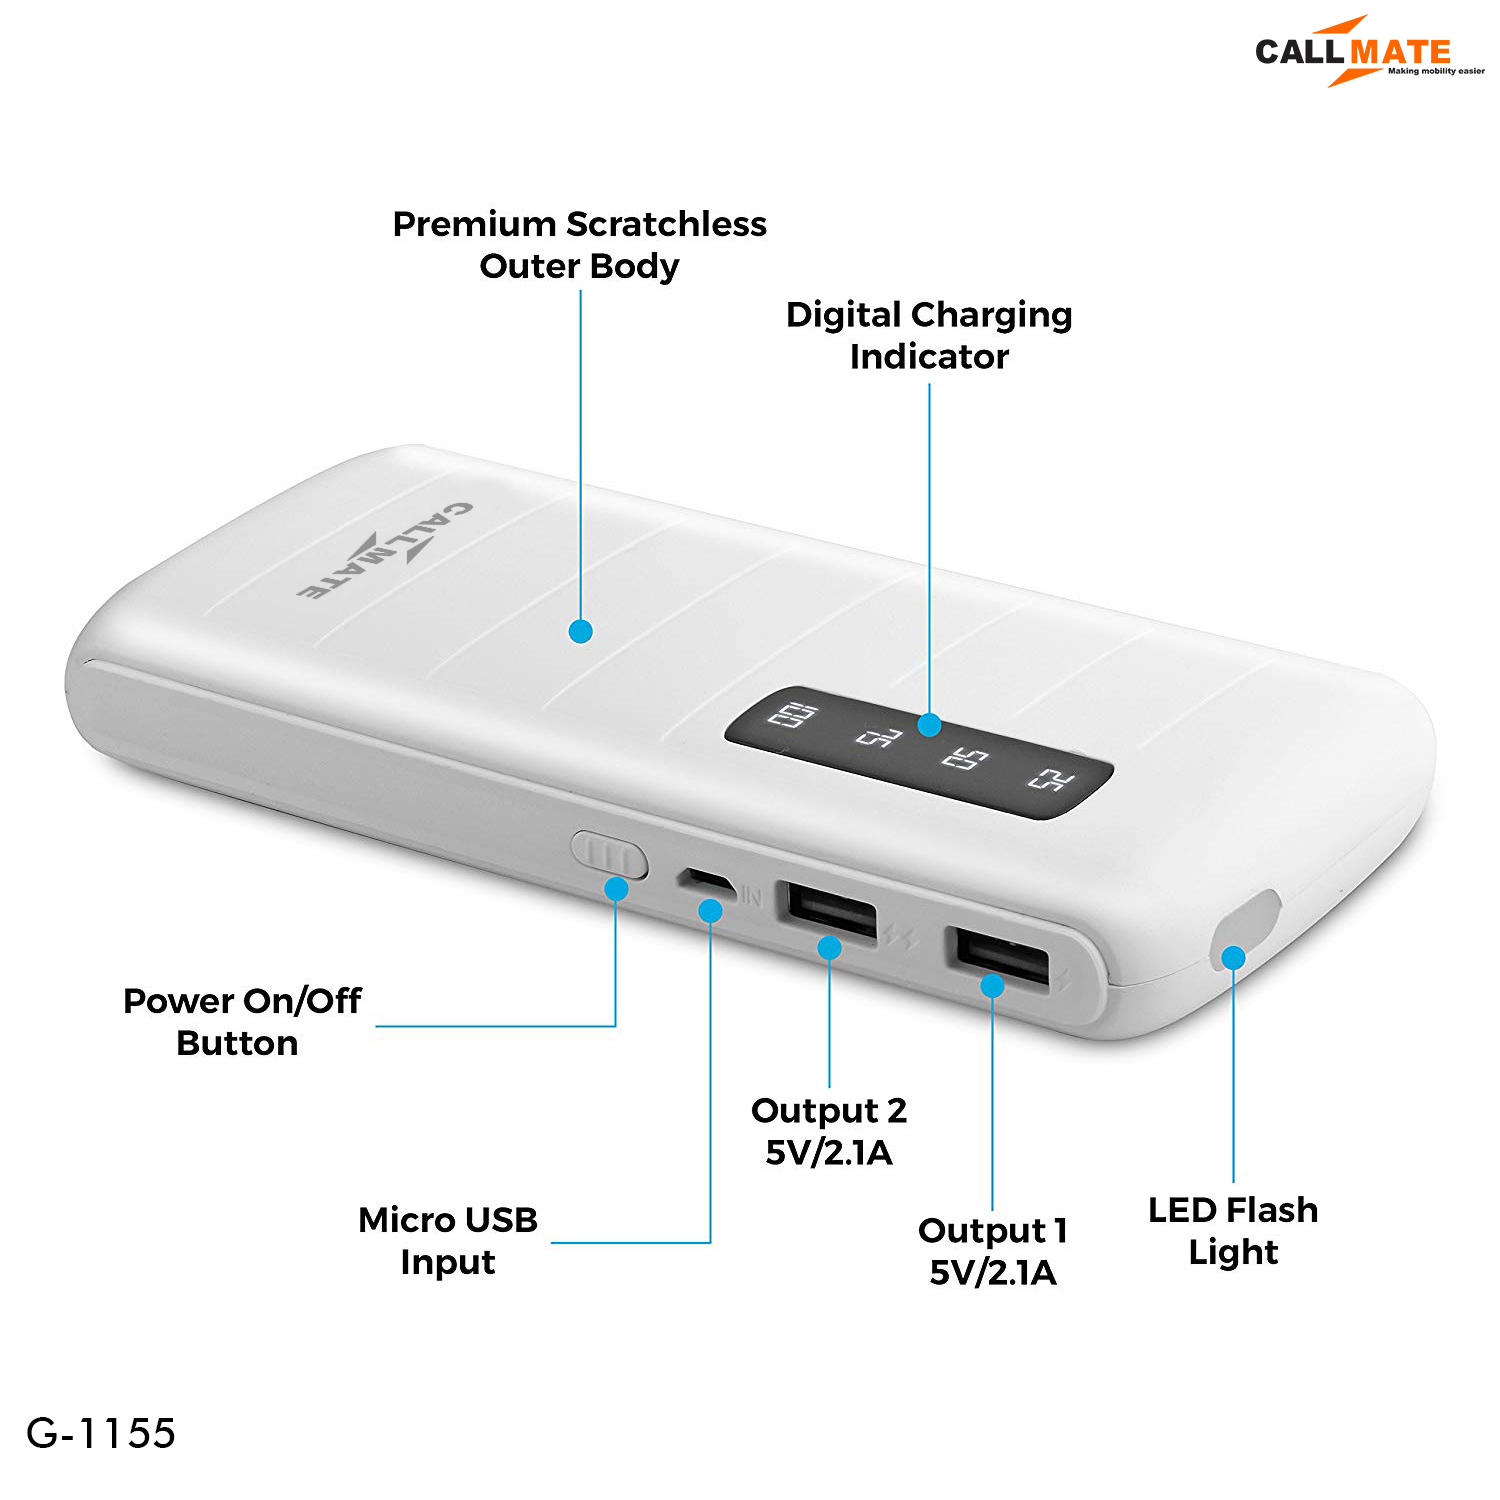 Callmate G1155 2A Fast Charge 10000 -mAh Li-Ion Power Bank White